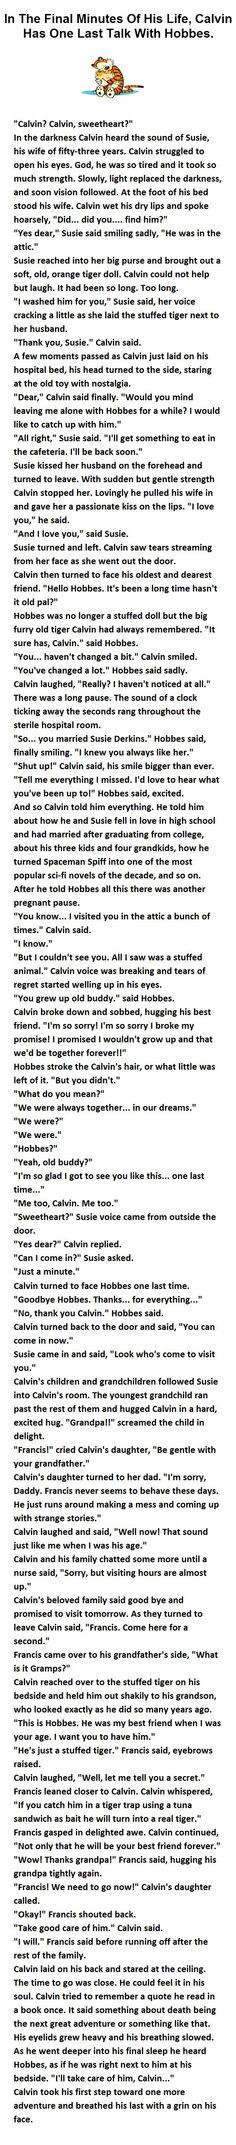 Calvin and Hobbes. In the final minutes of Calvin's life, he has one last talk with Hobbes.